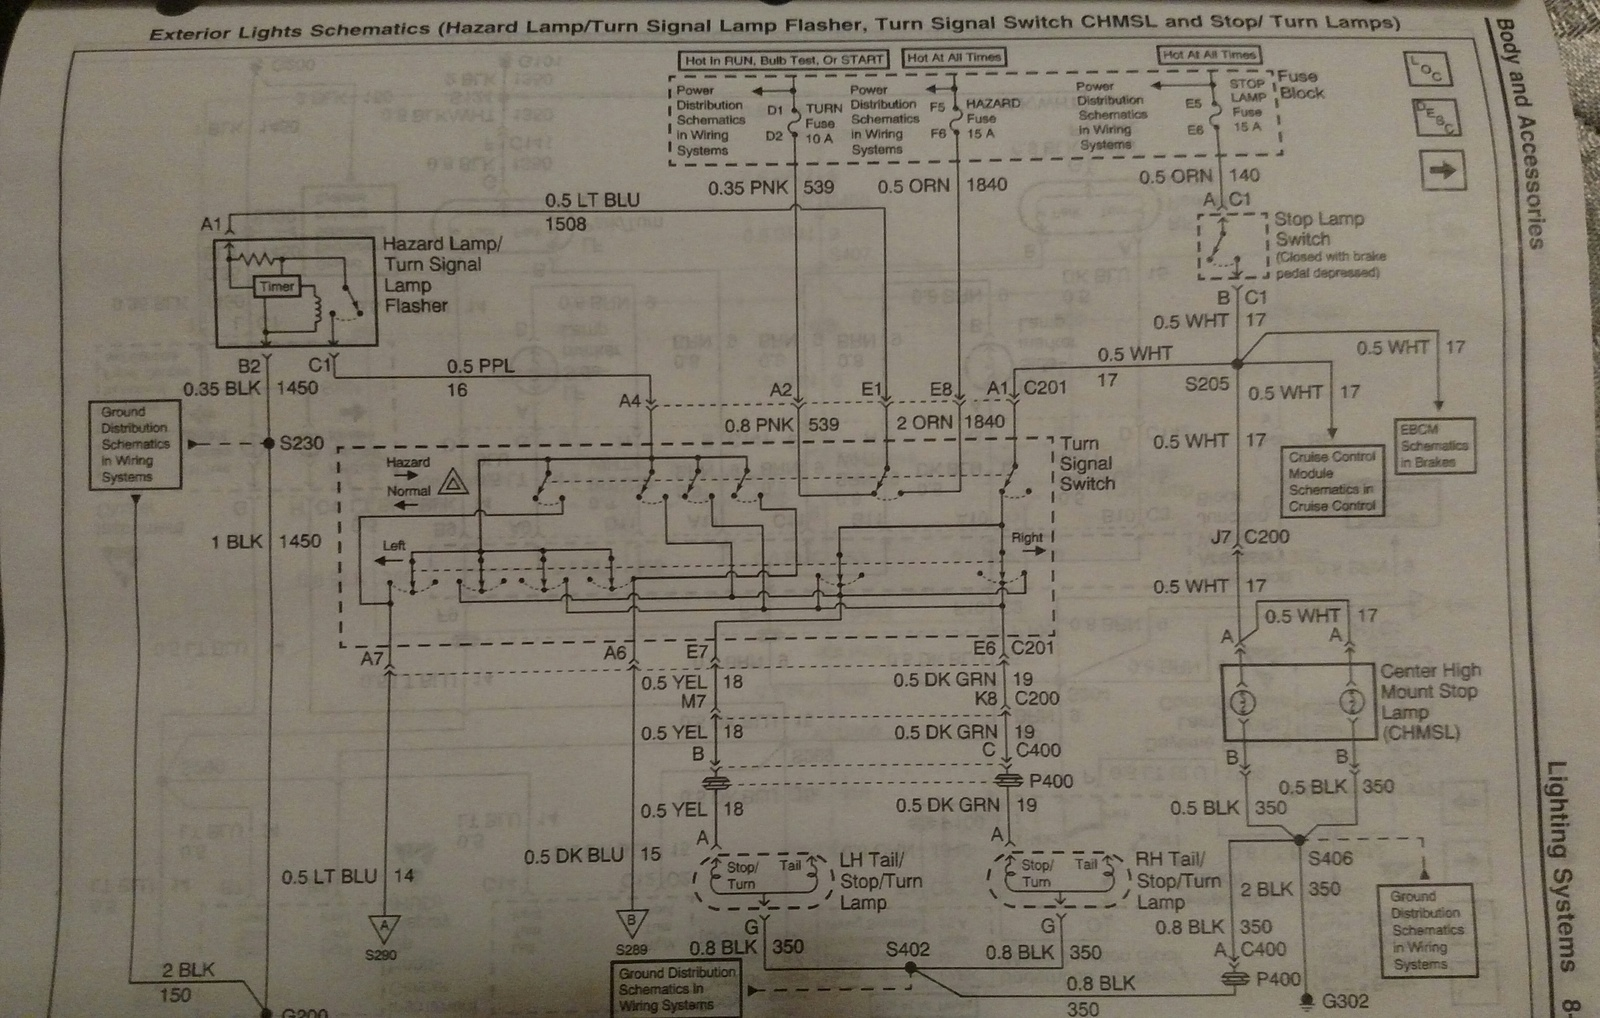 Here's the wiring diagram. You're looking at the yellow wire on the left  socket and the dark green wire on the right socket. HTH. - Jim